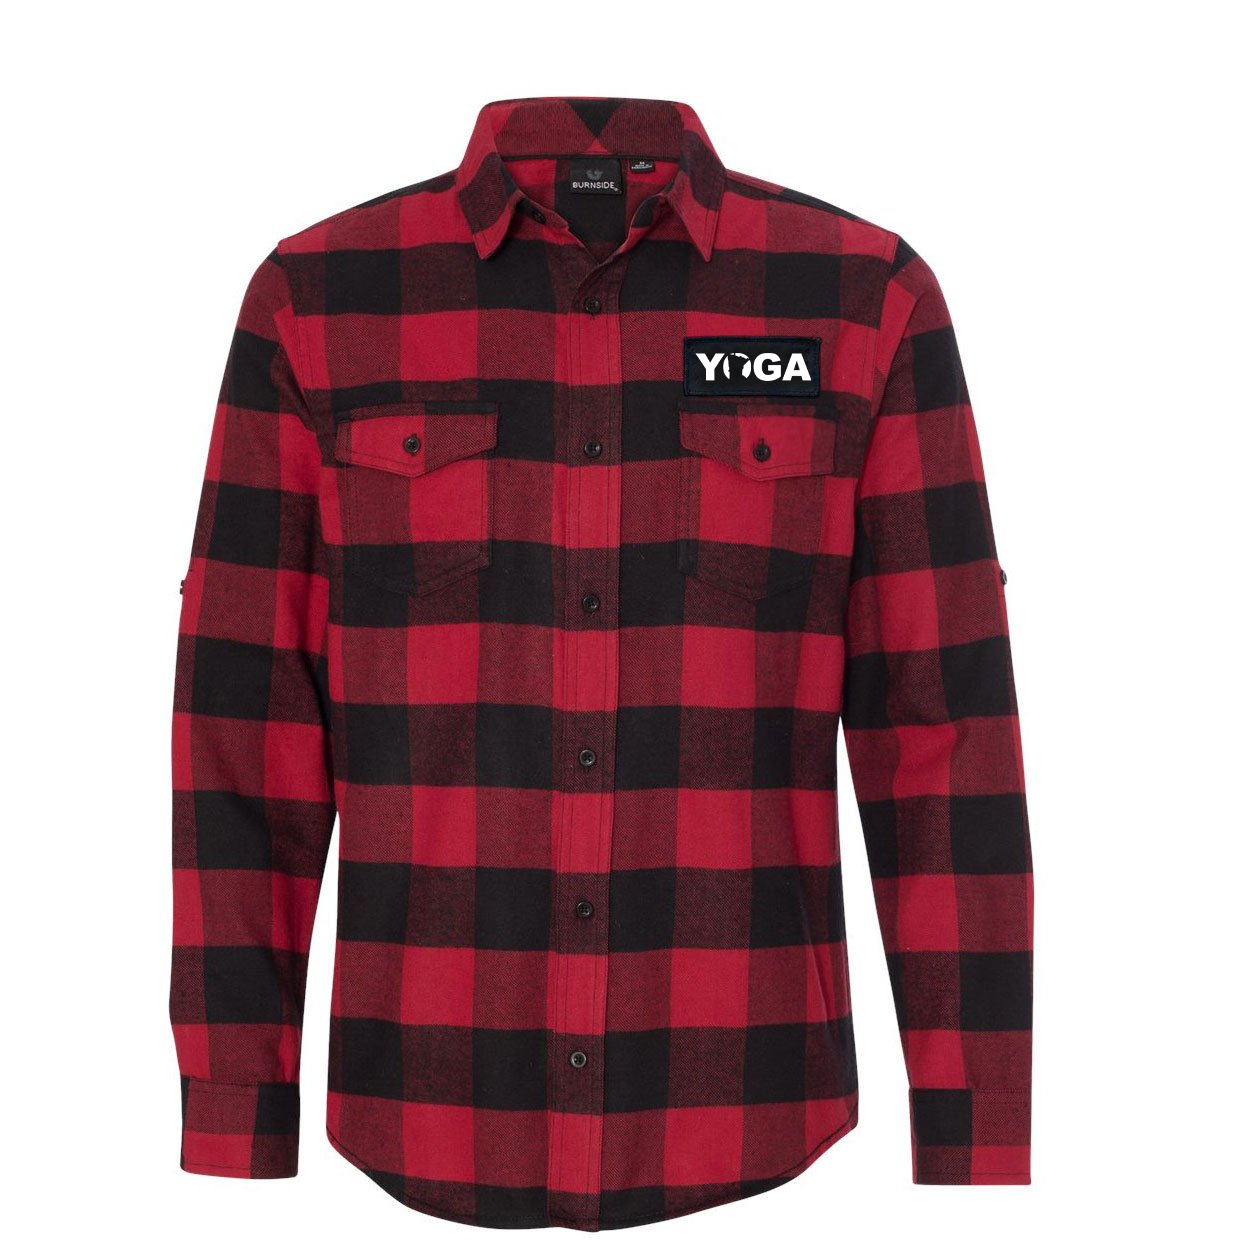 Yoga Minnesota Classic Unisex Long Sleeve Woven Patch Flannel Shirt Red/Black Buffalo (White Logo)